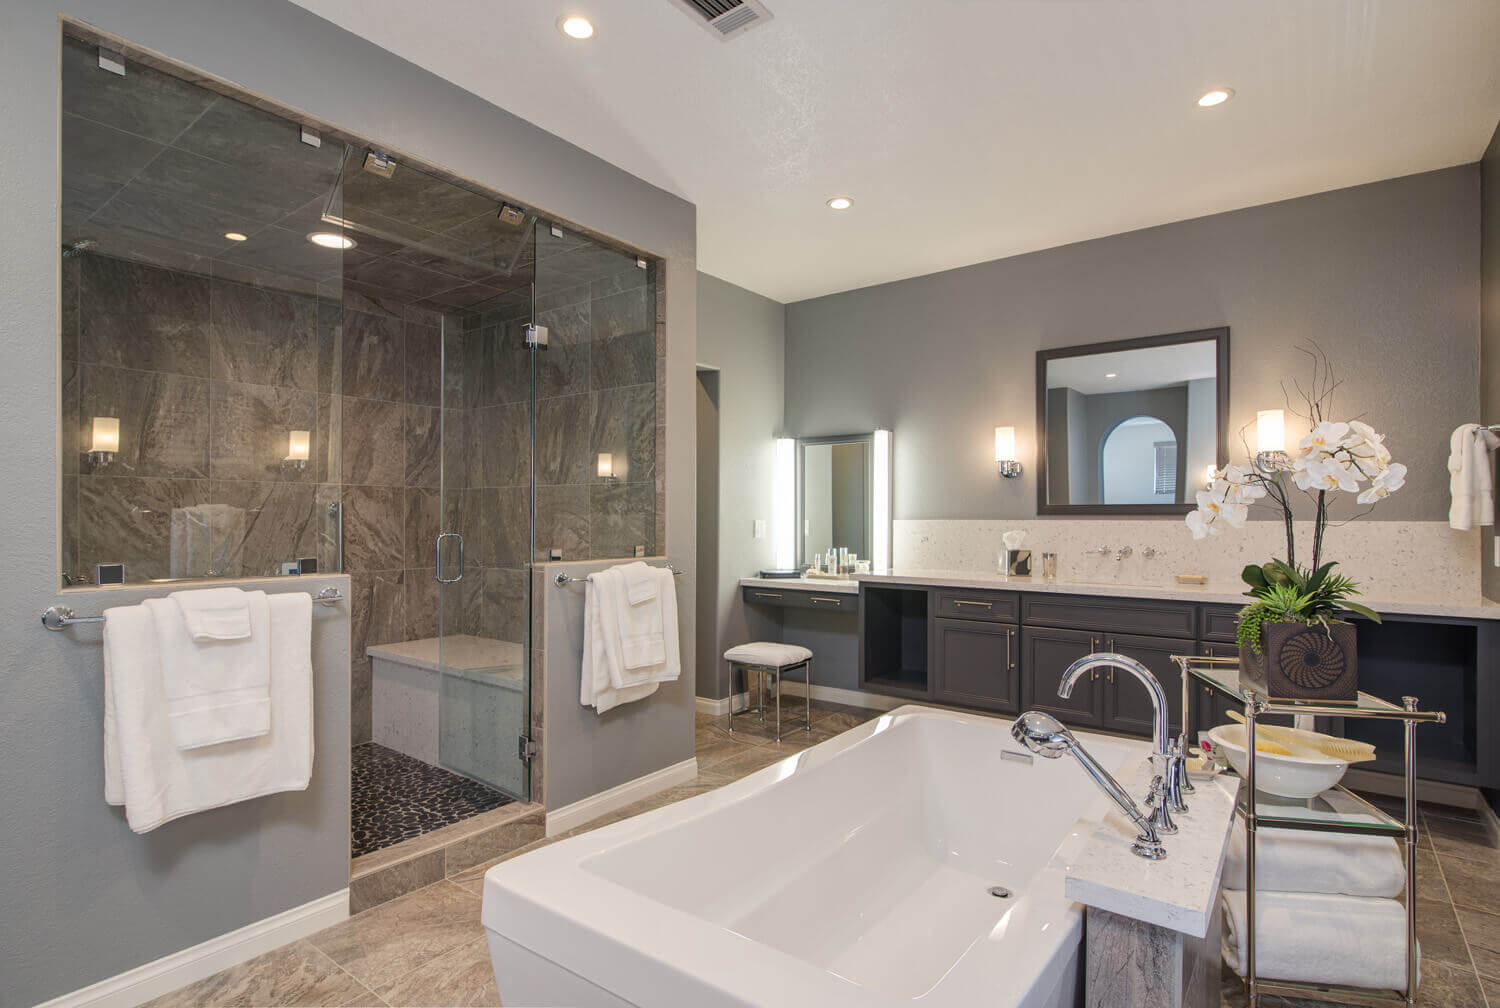 2018 bathroom renovation cost guide for Bathroom improvements